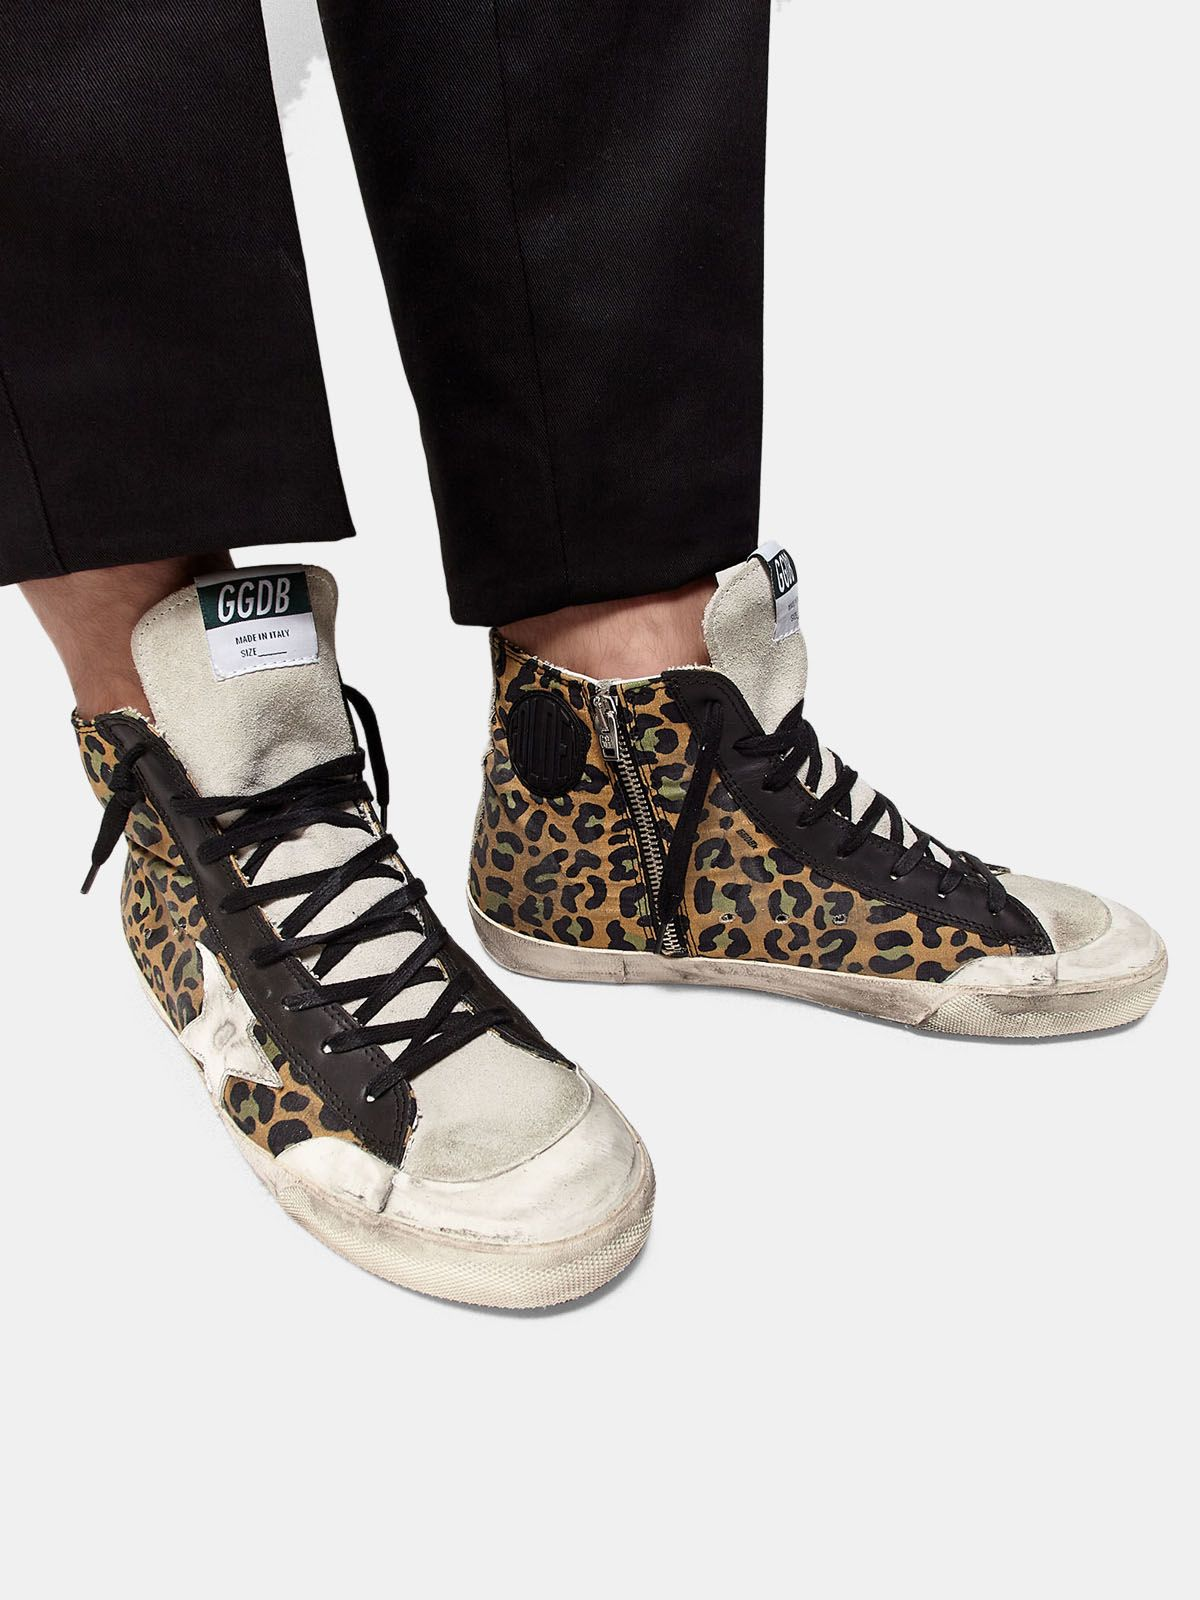 Golden Goose - Francy sneakers in canvas with leopard pattern and leather in